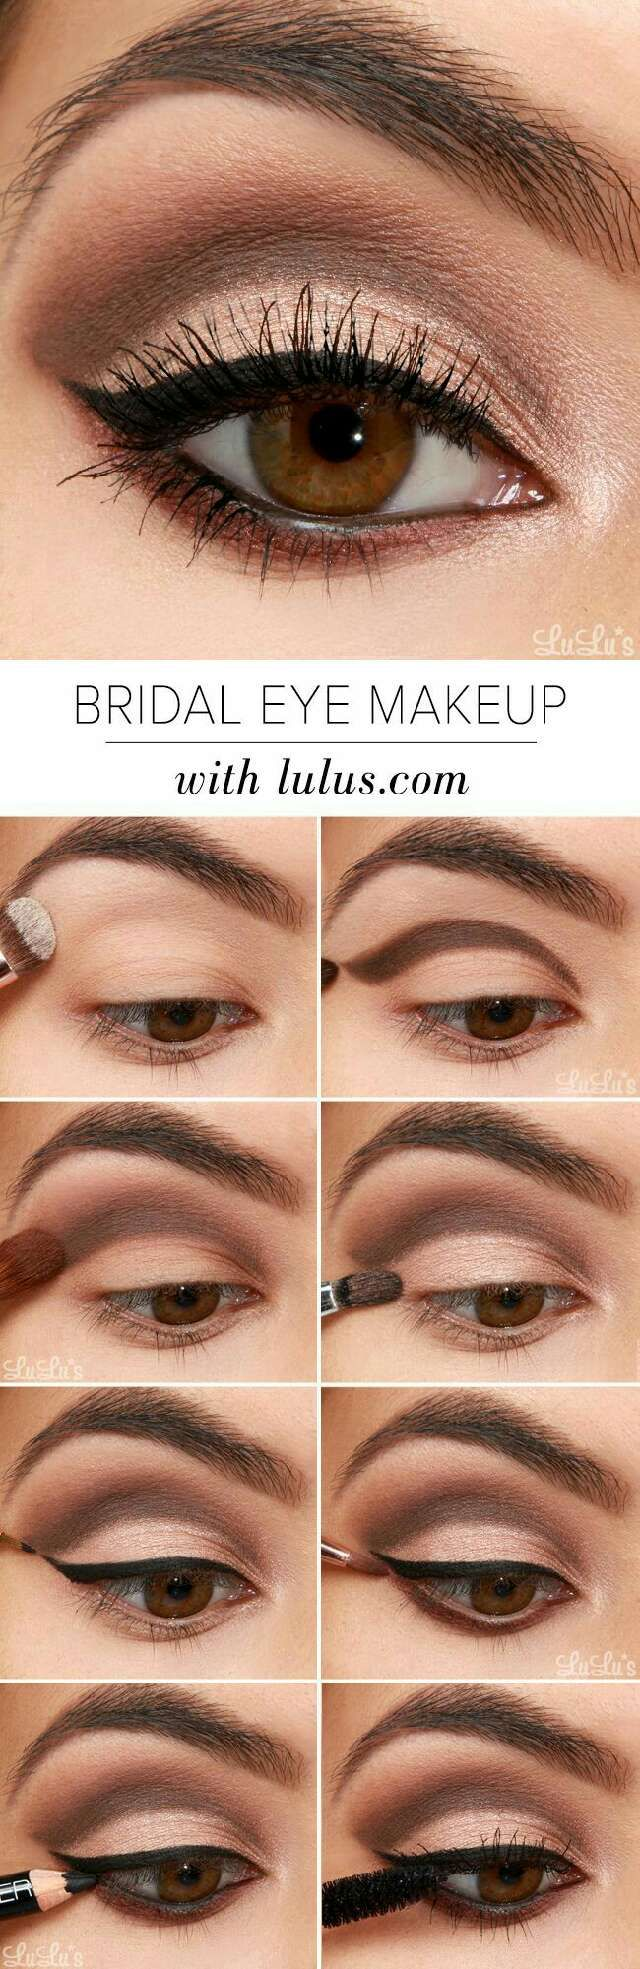 How To Eye Makeup For Brown Eyes Trusper Http Rskfashion Co Uk